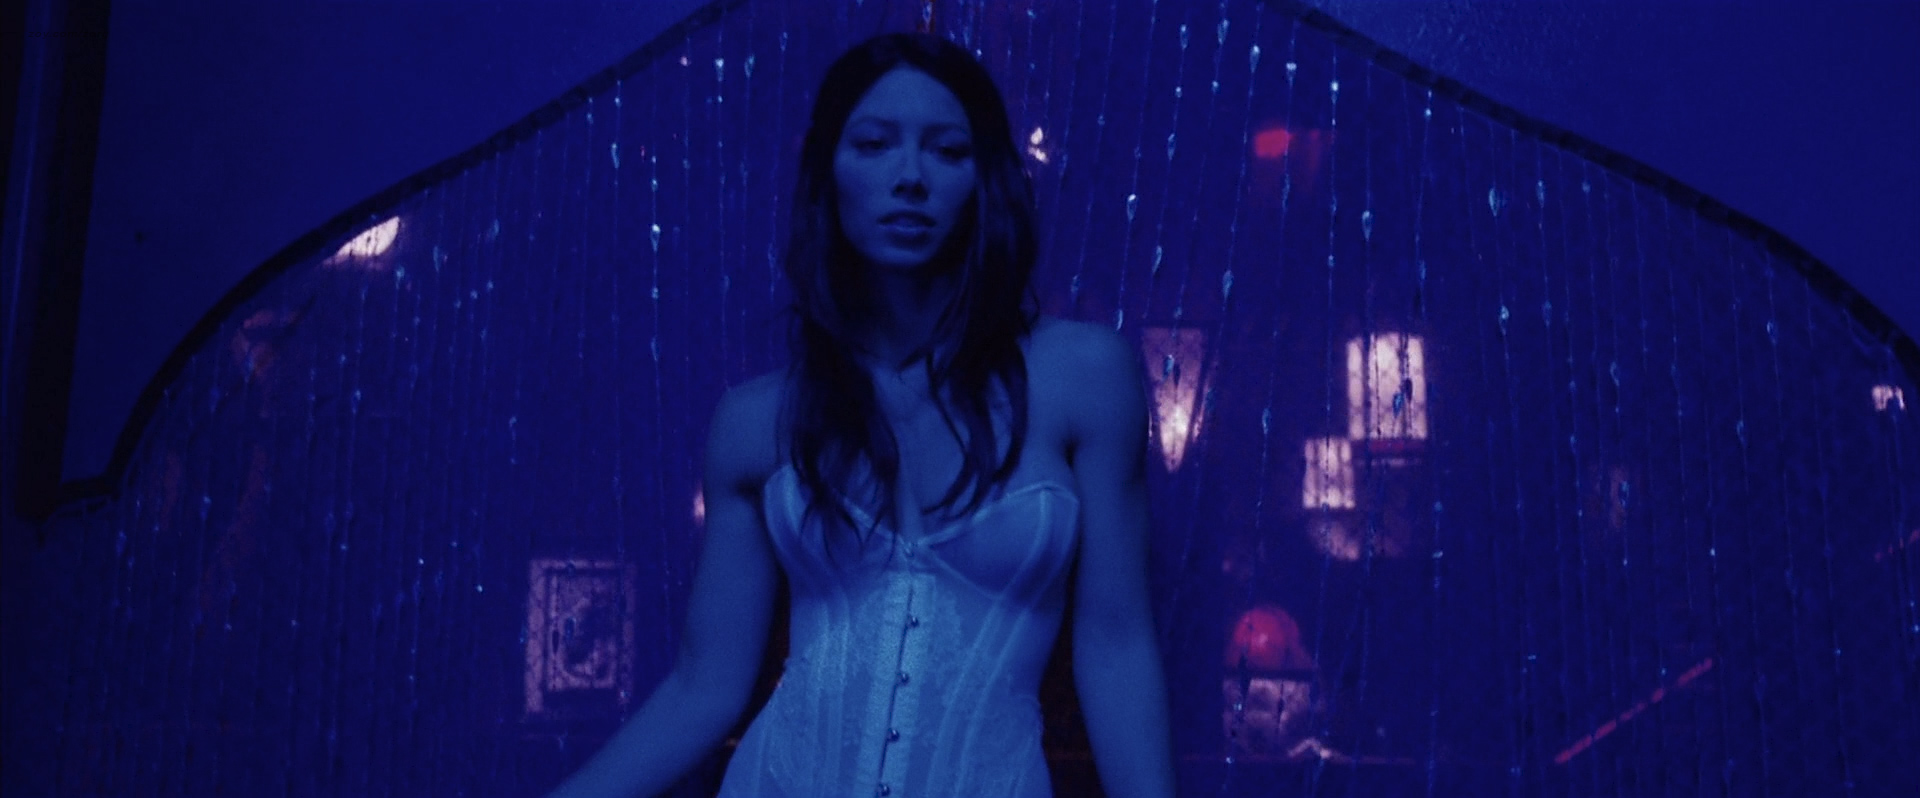 Jessica Biel Striptease and Nude in Powder Blue - XVideos